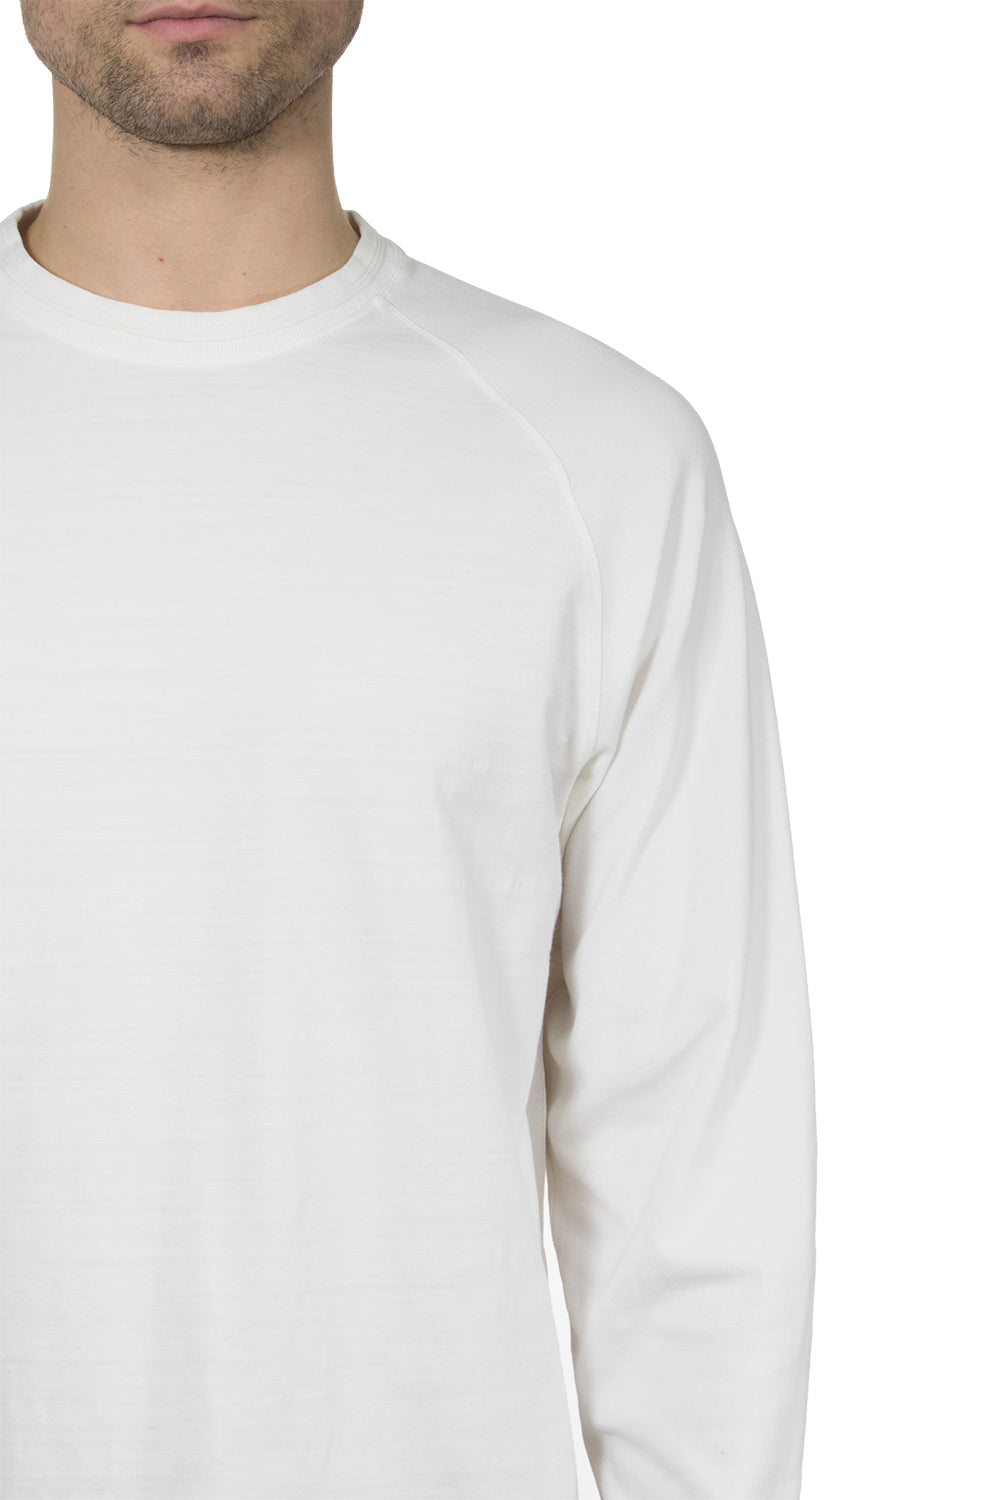 Thaddeus CONRAD Long Sleeve Cotton Slub Crew Neck